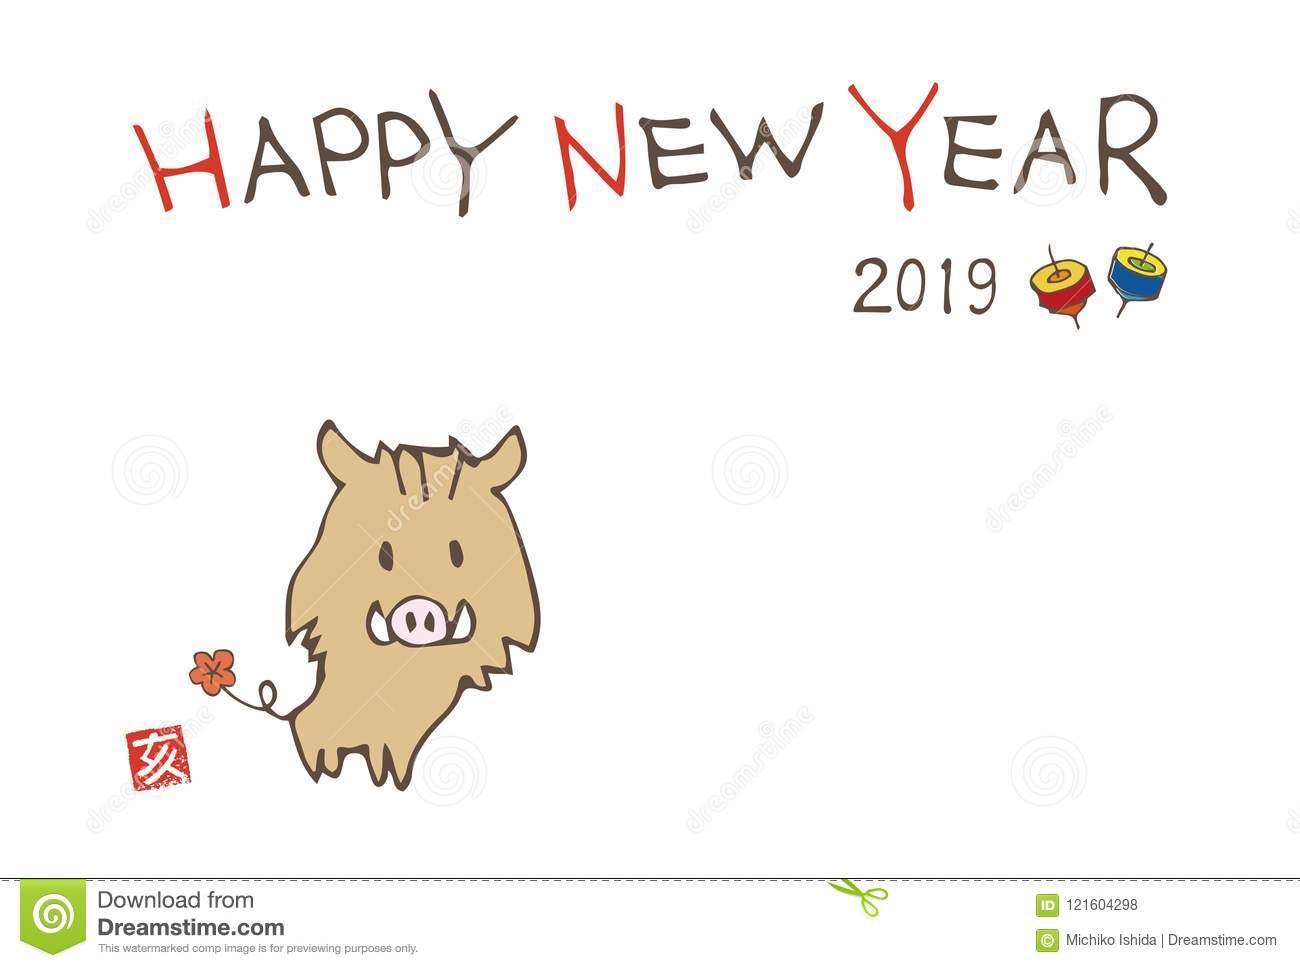 New Year Greeting Card With Cute Boar Stock Vector - Illustration of ...